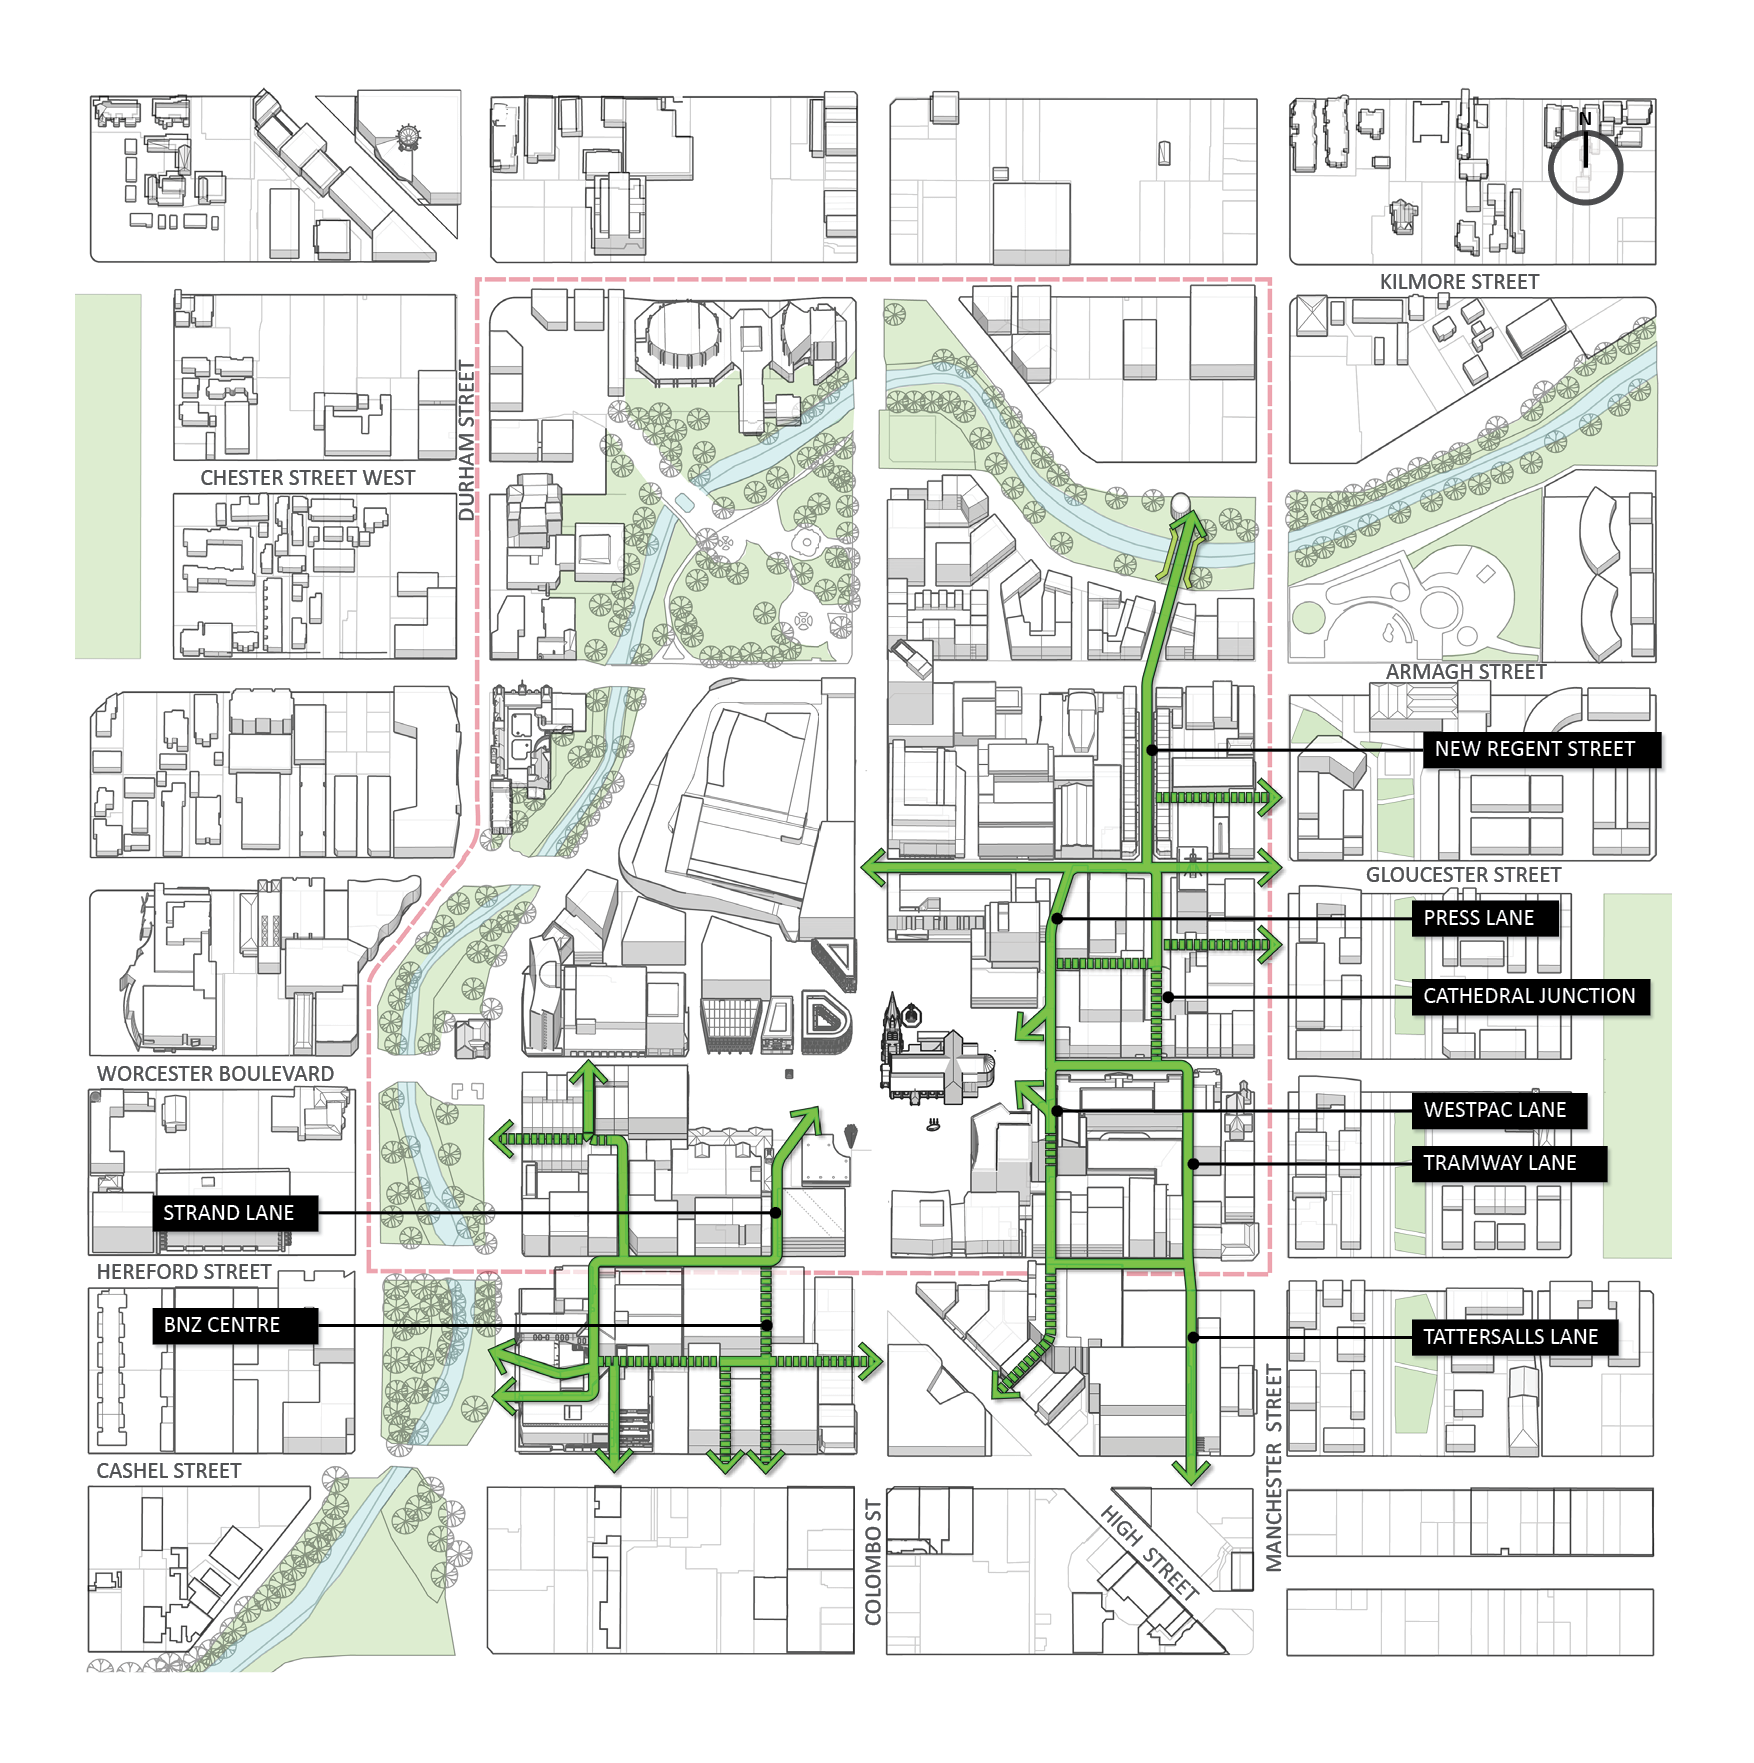 Map diagram of possible upgrades to the streets and lanes in the central city.